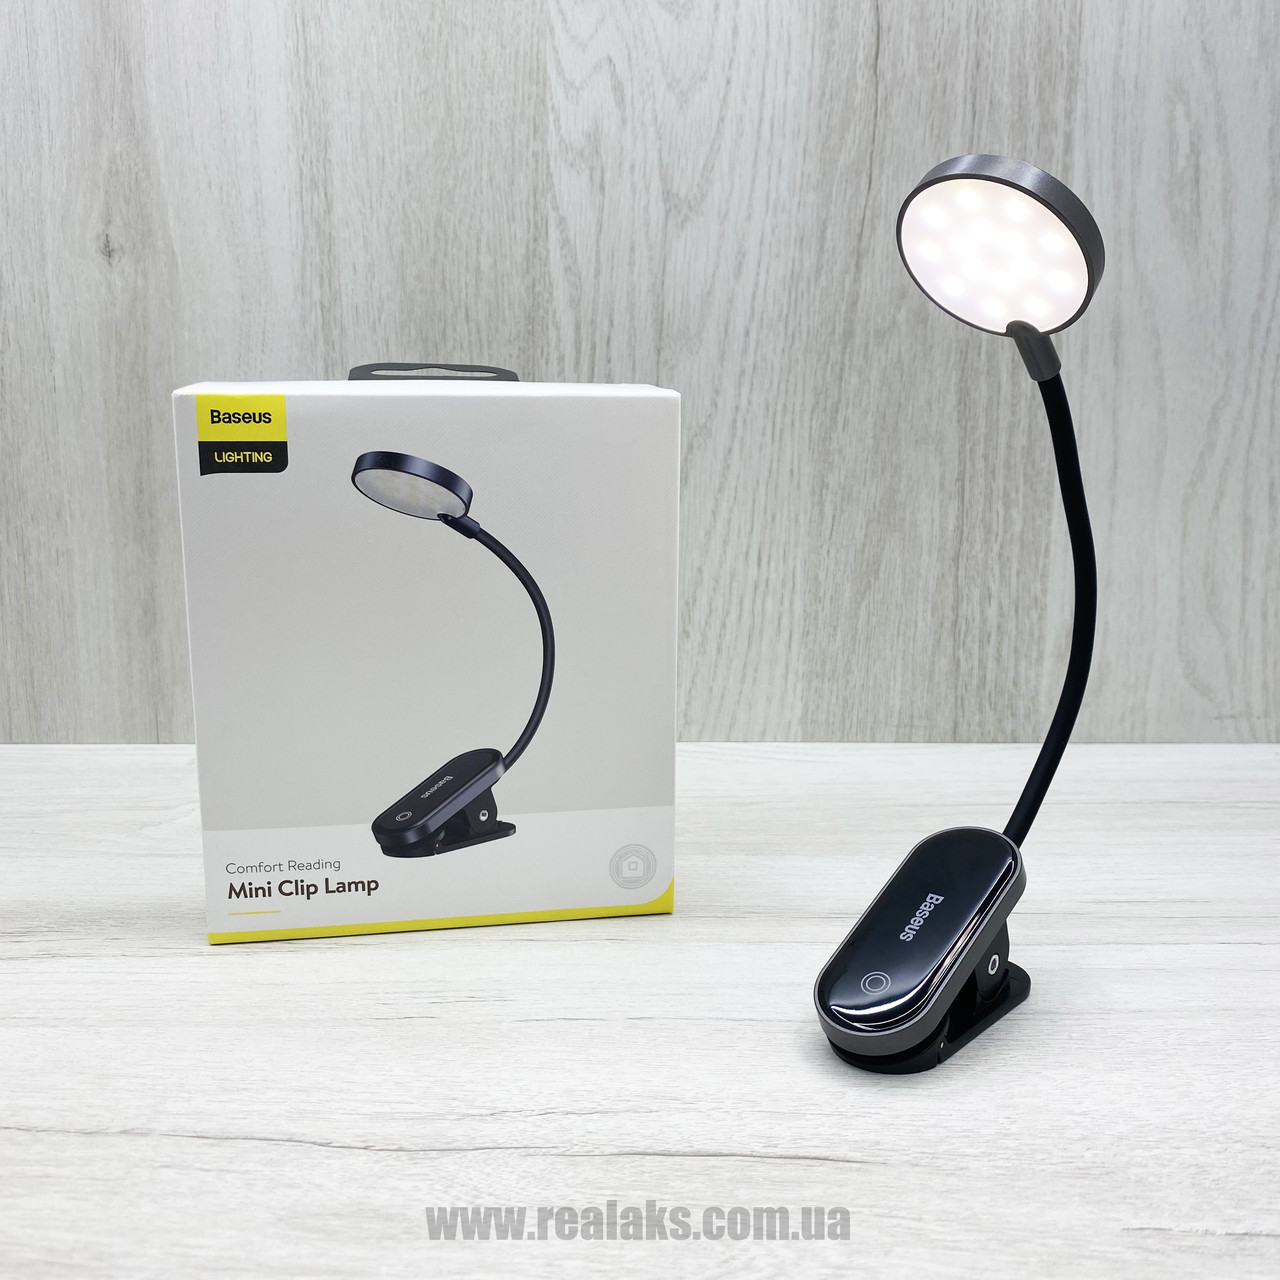 Универсальная лампа с клипсой BASEUS Mini Clip Lamp (black)